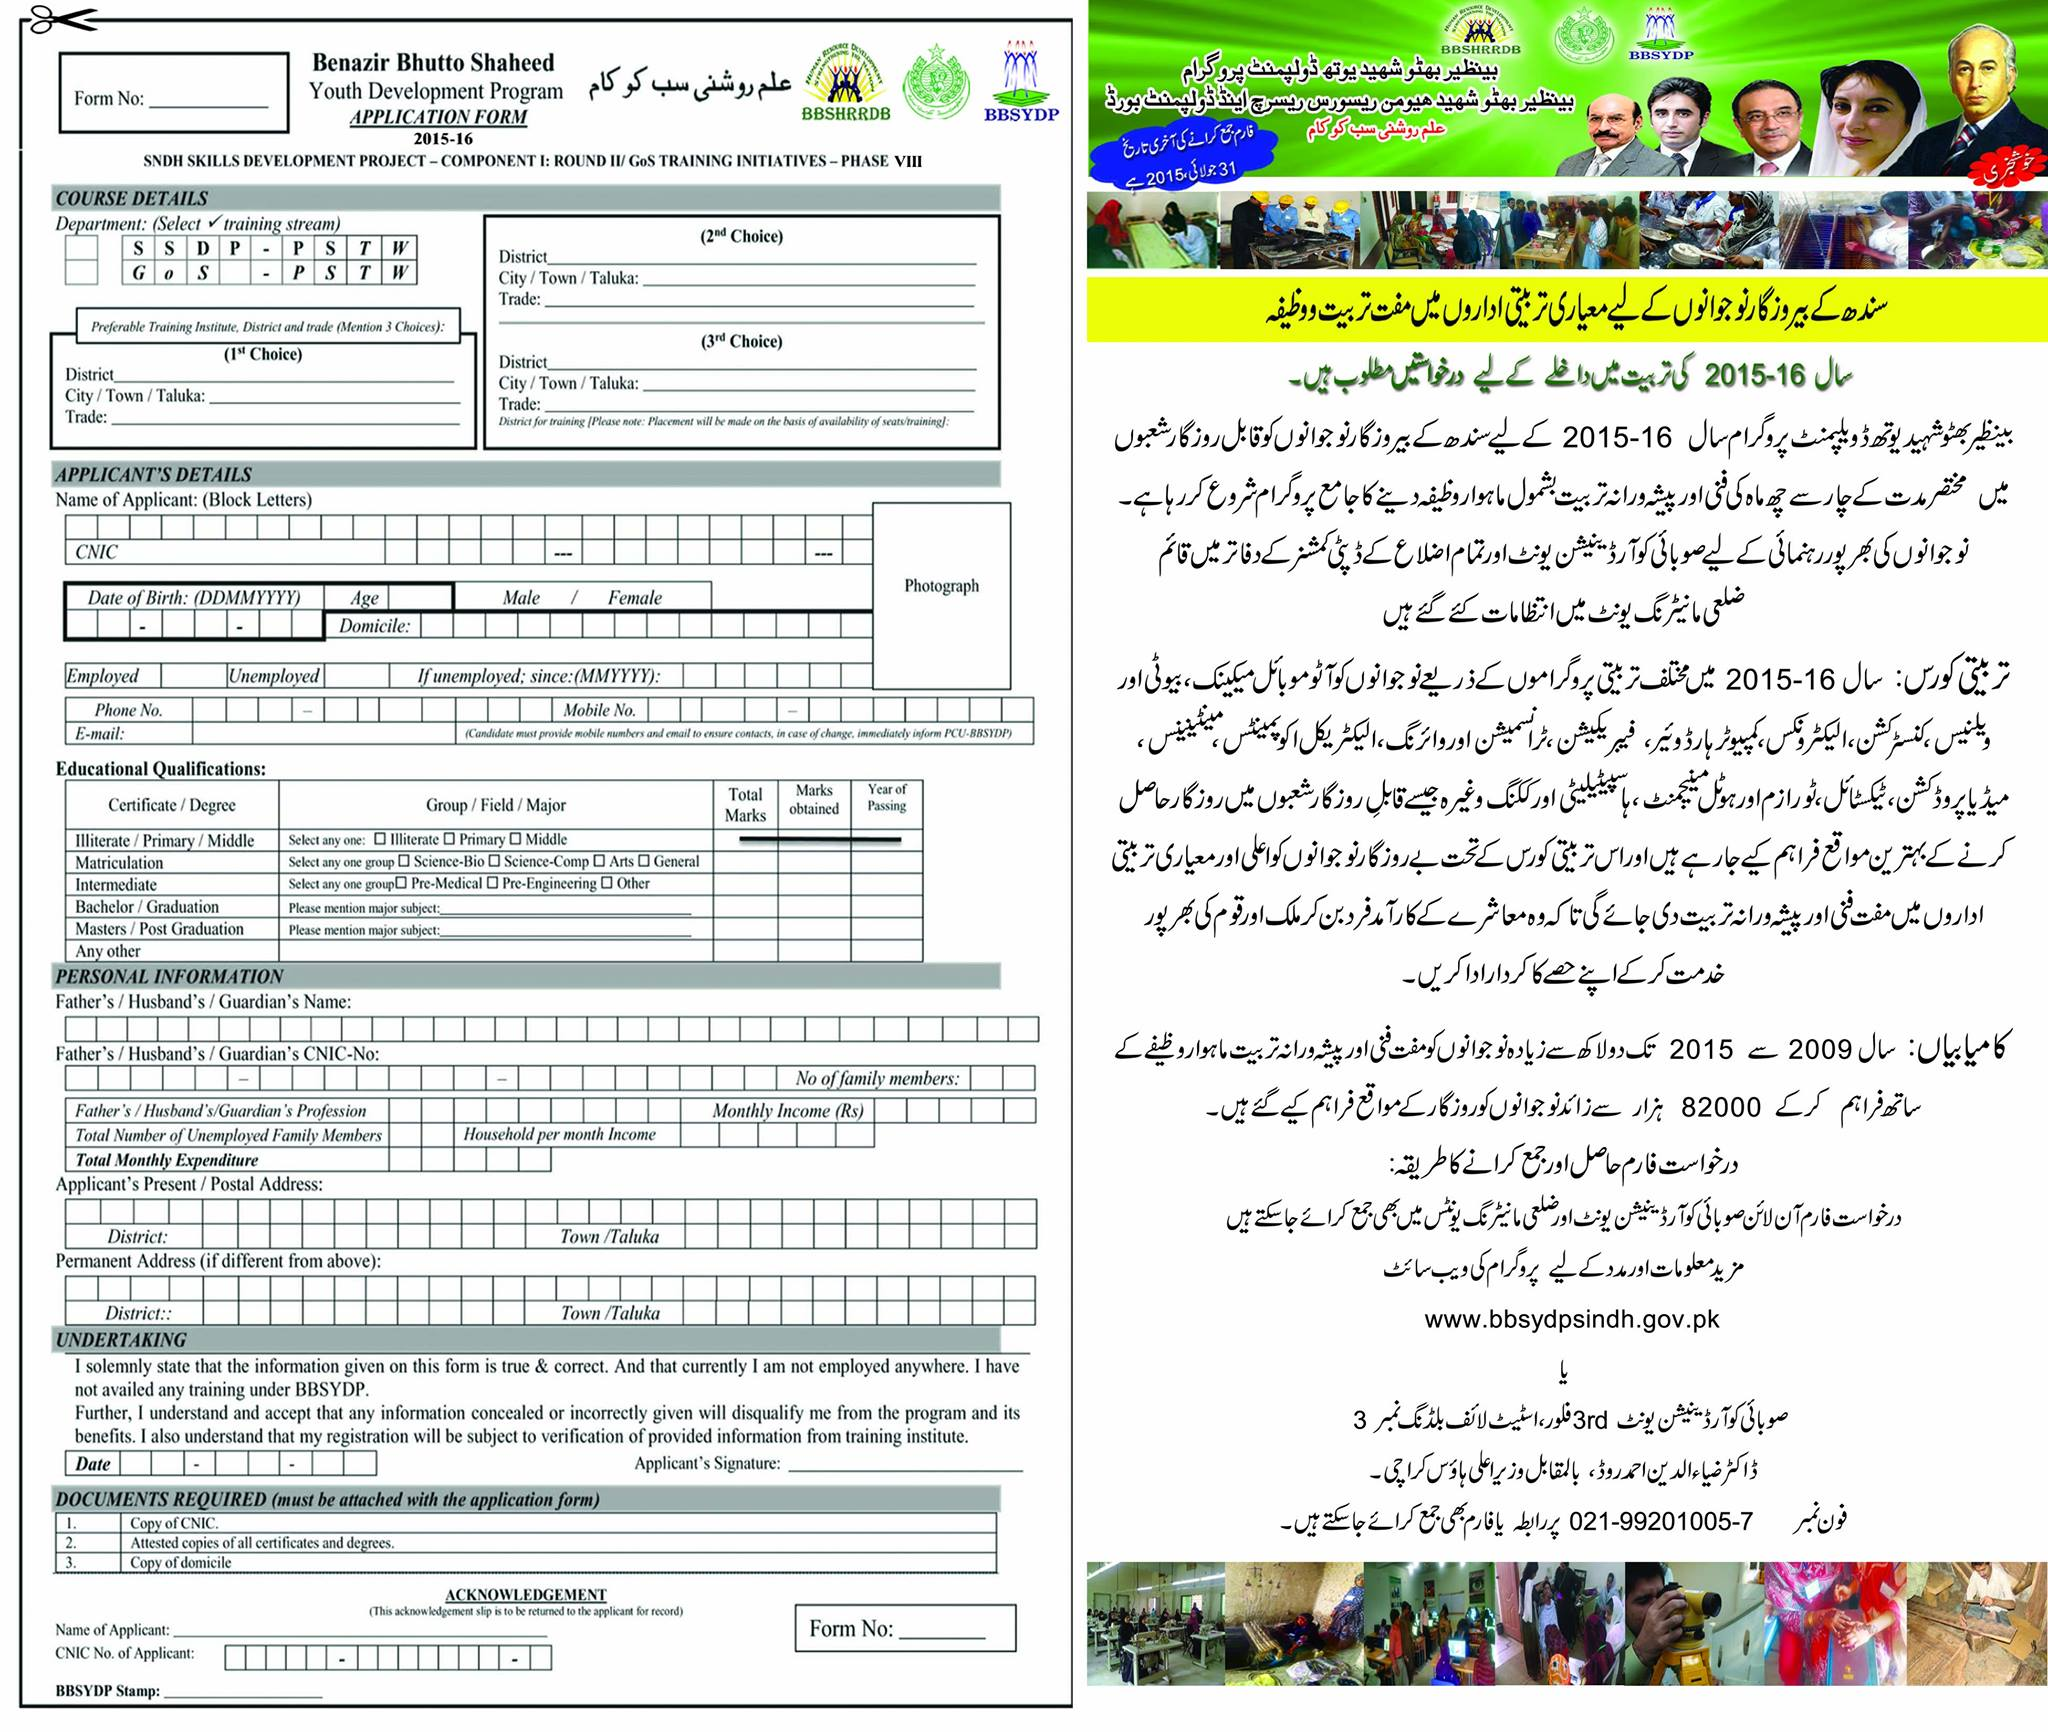 Benazir Bhutto Youth Development Program BBSYDP Application Form 2017 Advertisement